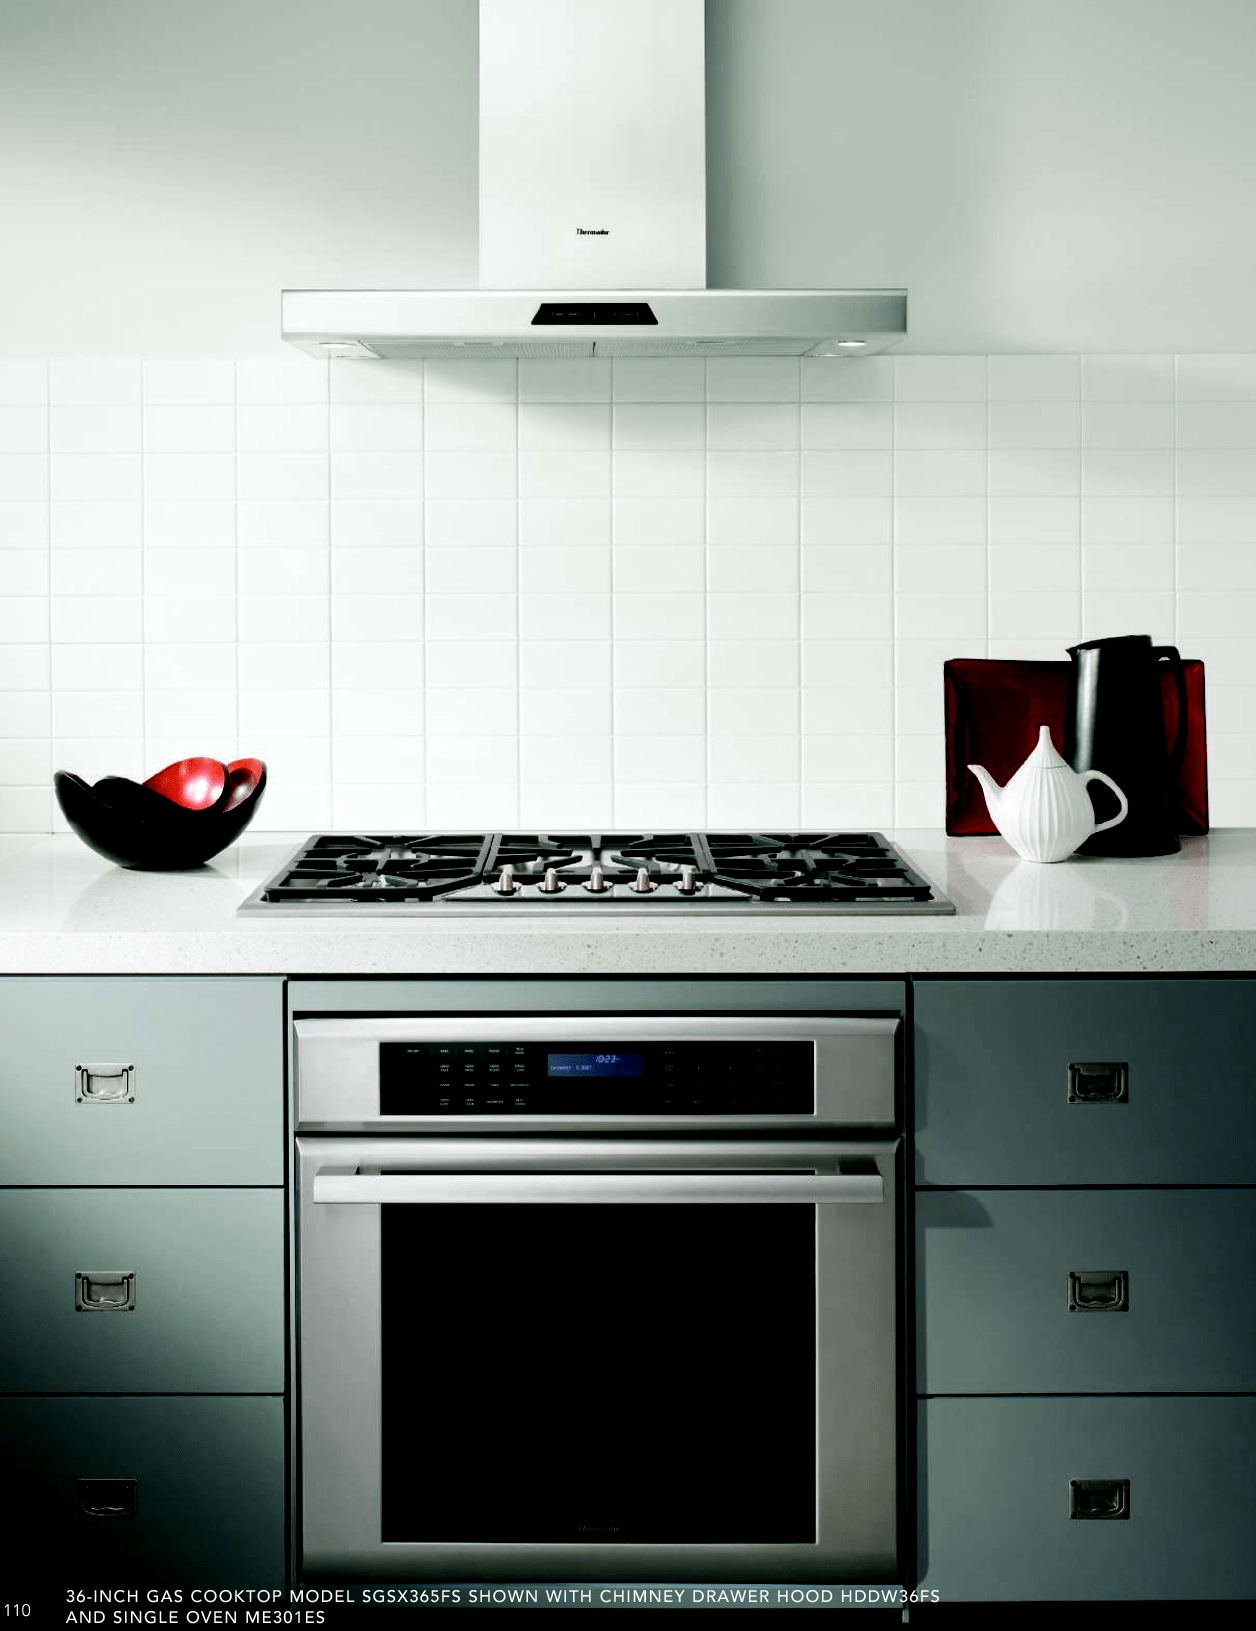 Cooktop Gas Stoves 36 Cooktop 30 Quot Oven Google Search Kitchen Ideas